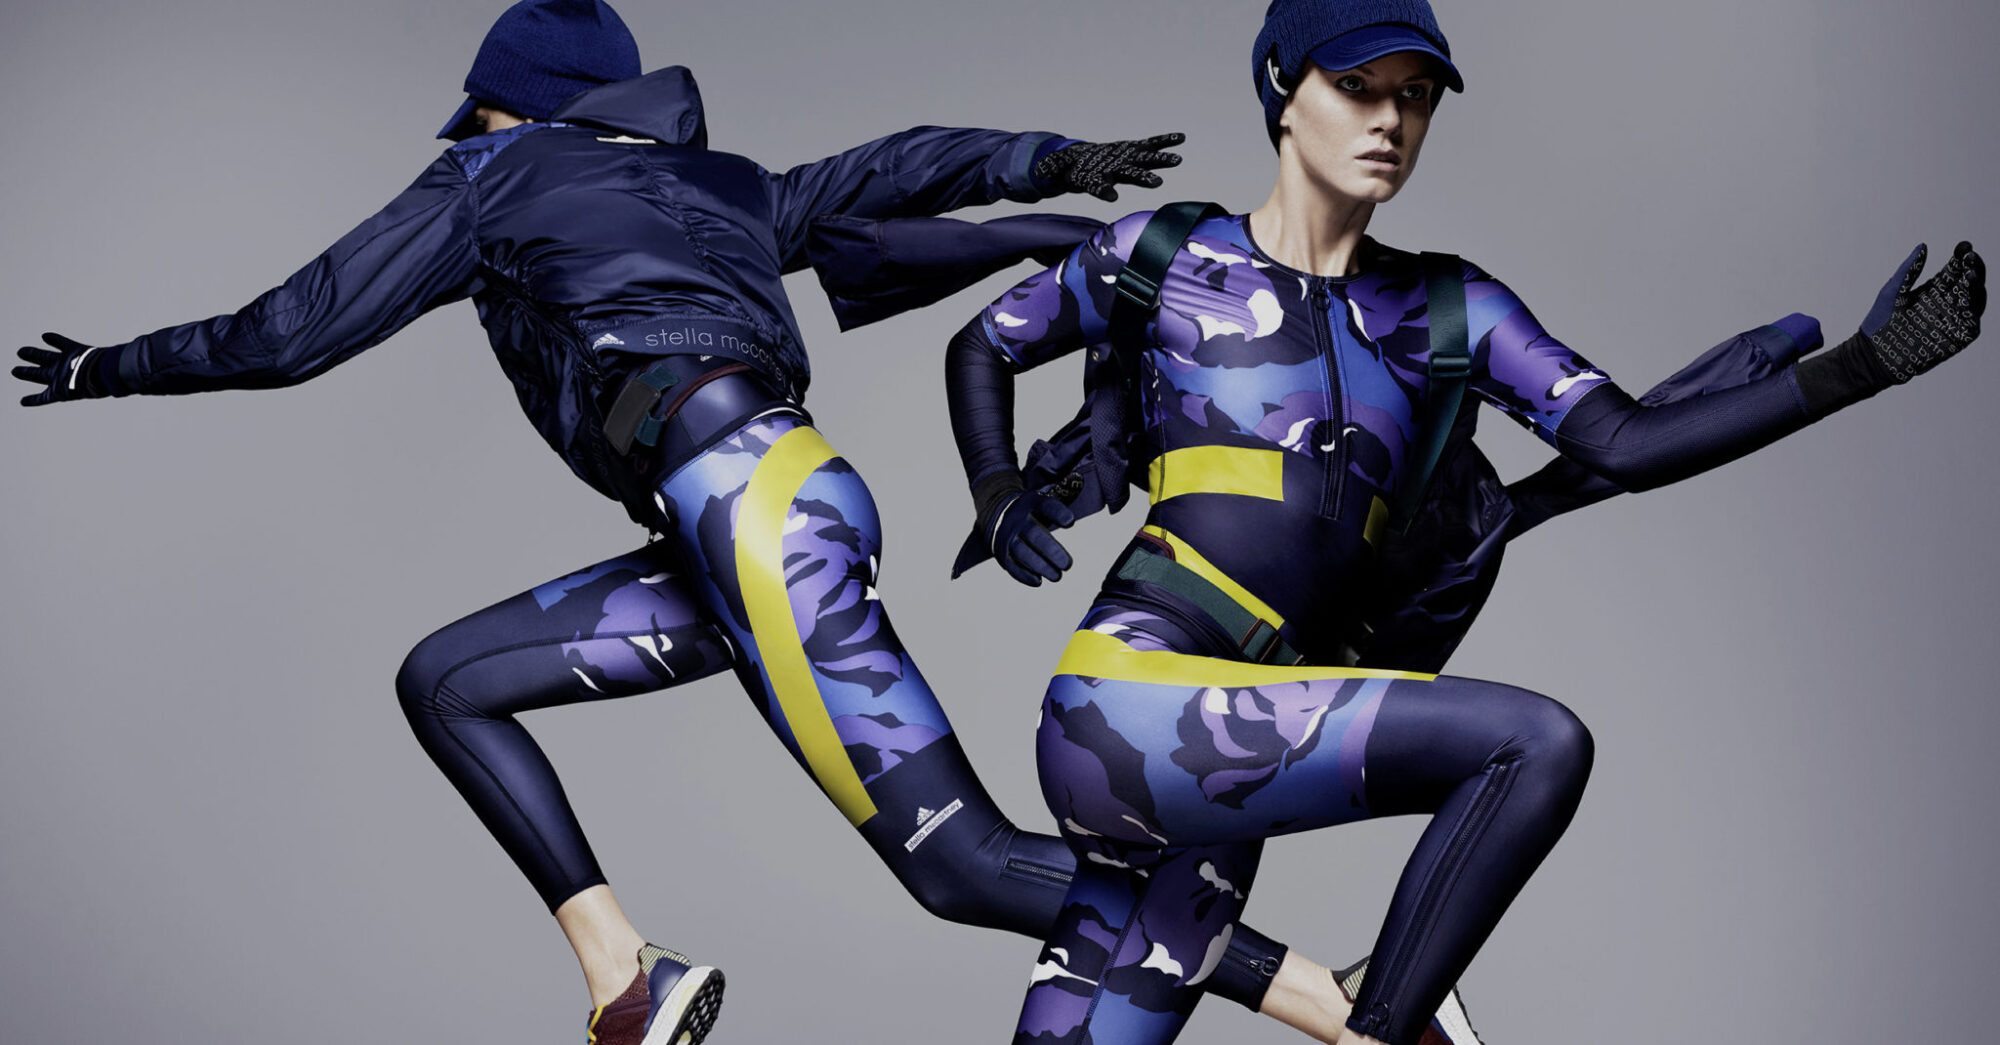 ADIDAS BY STELLA MCCARTNEY FALL 2015 COLLECTION